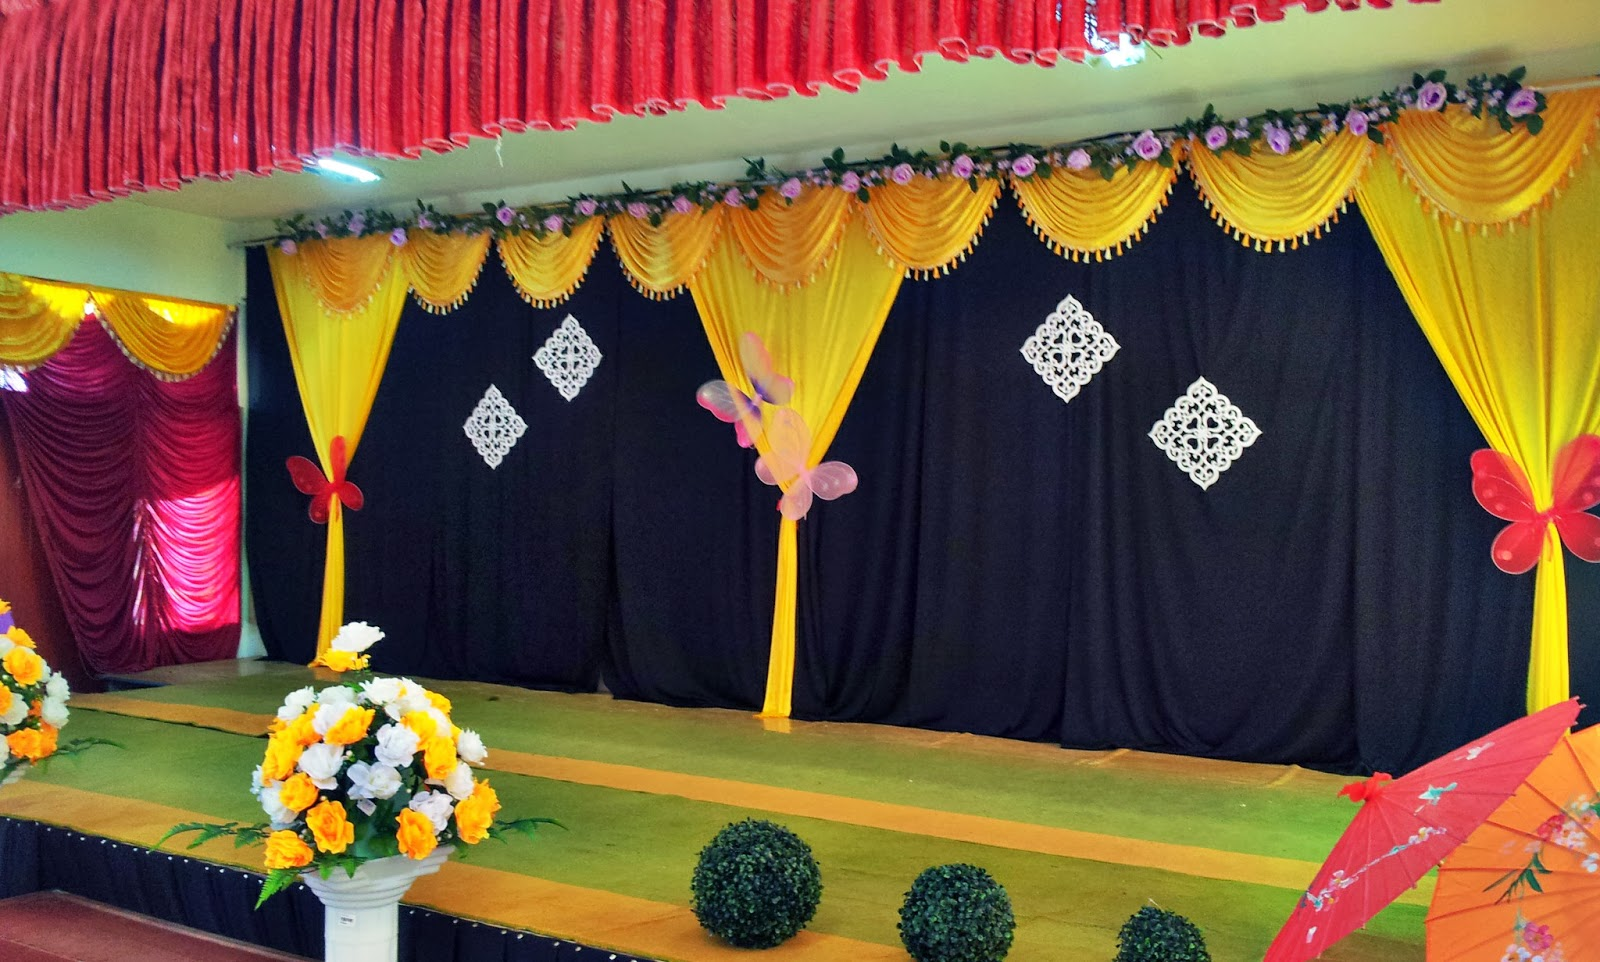 Stage decoration ideas for graduation for Graduation decorations